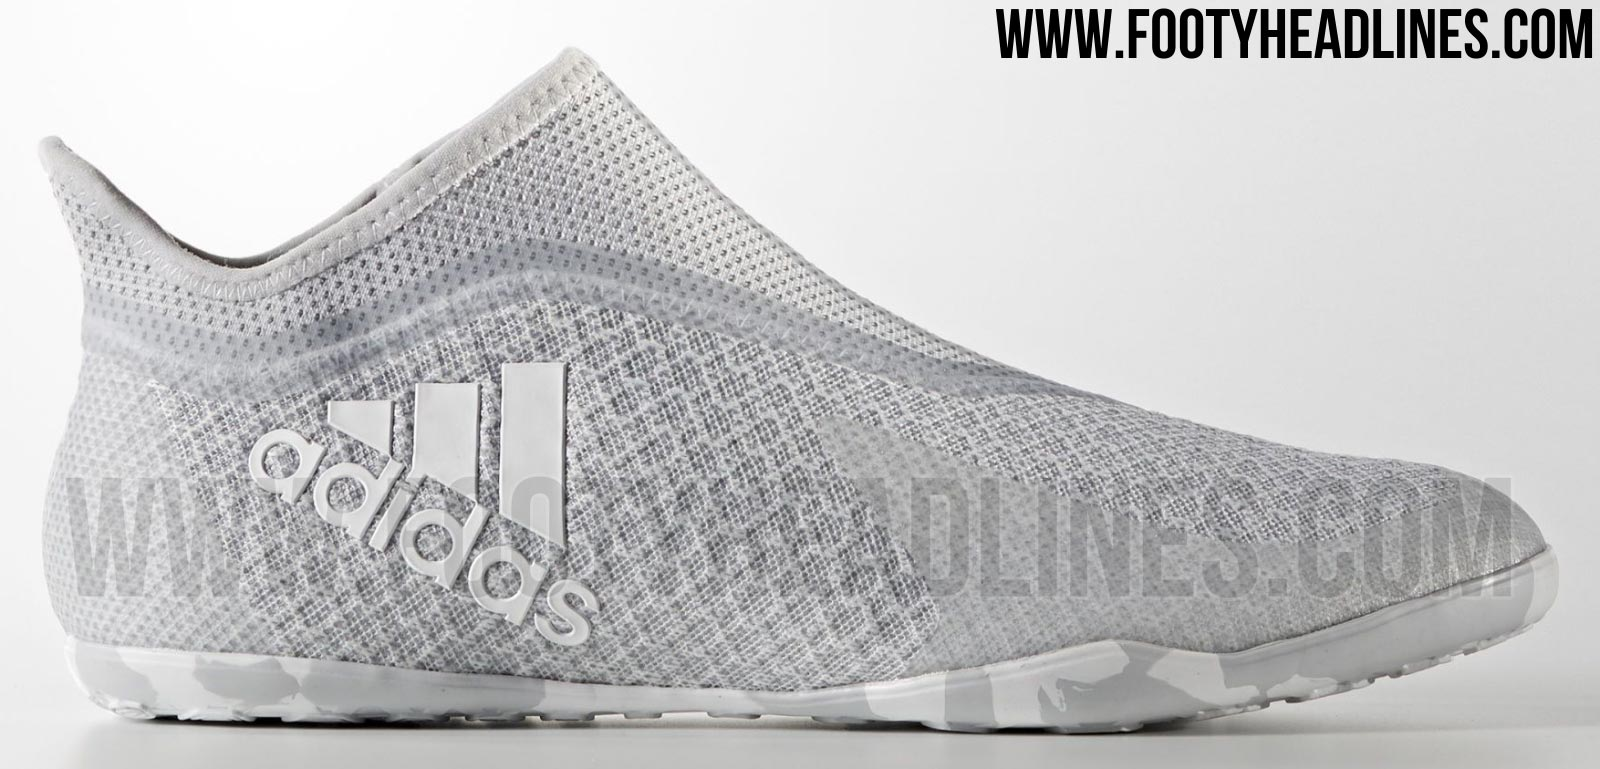 bf2c35799 Discount First-Ever (Truly) Laceless Adidas X Boots Released